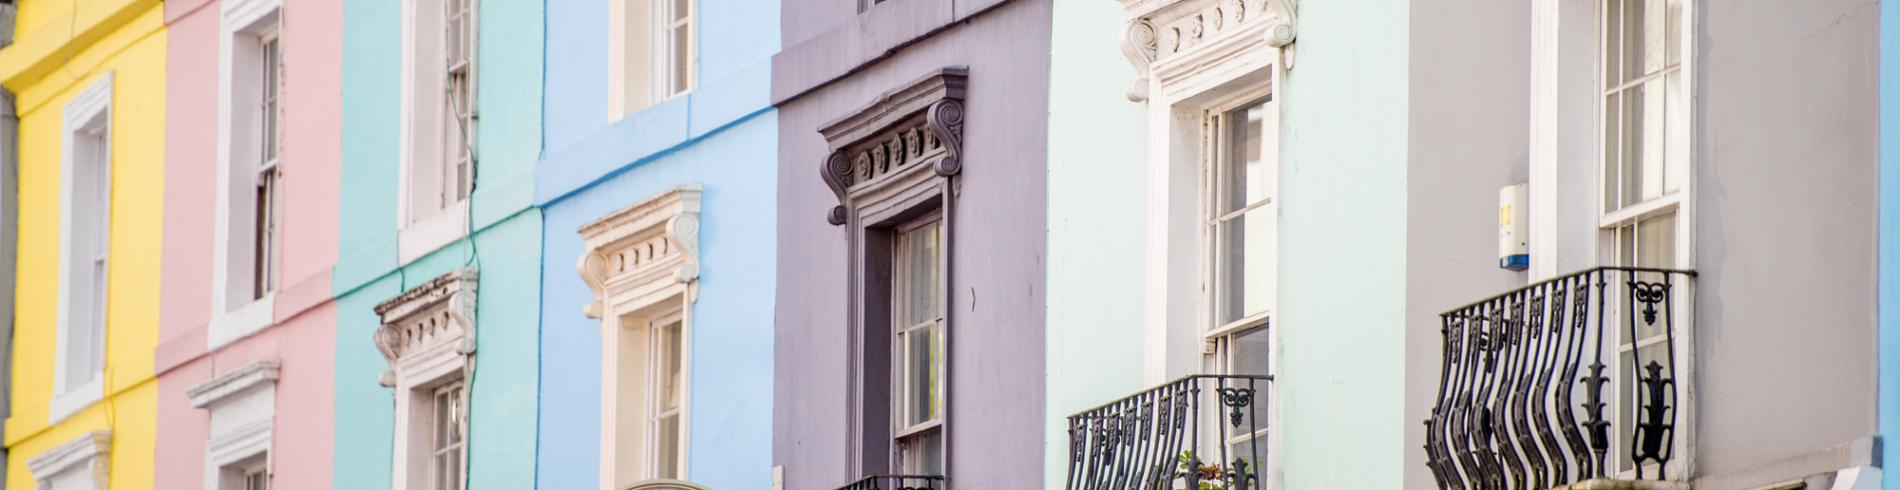 Colorful Notting Hill facades